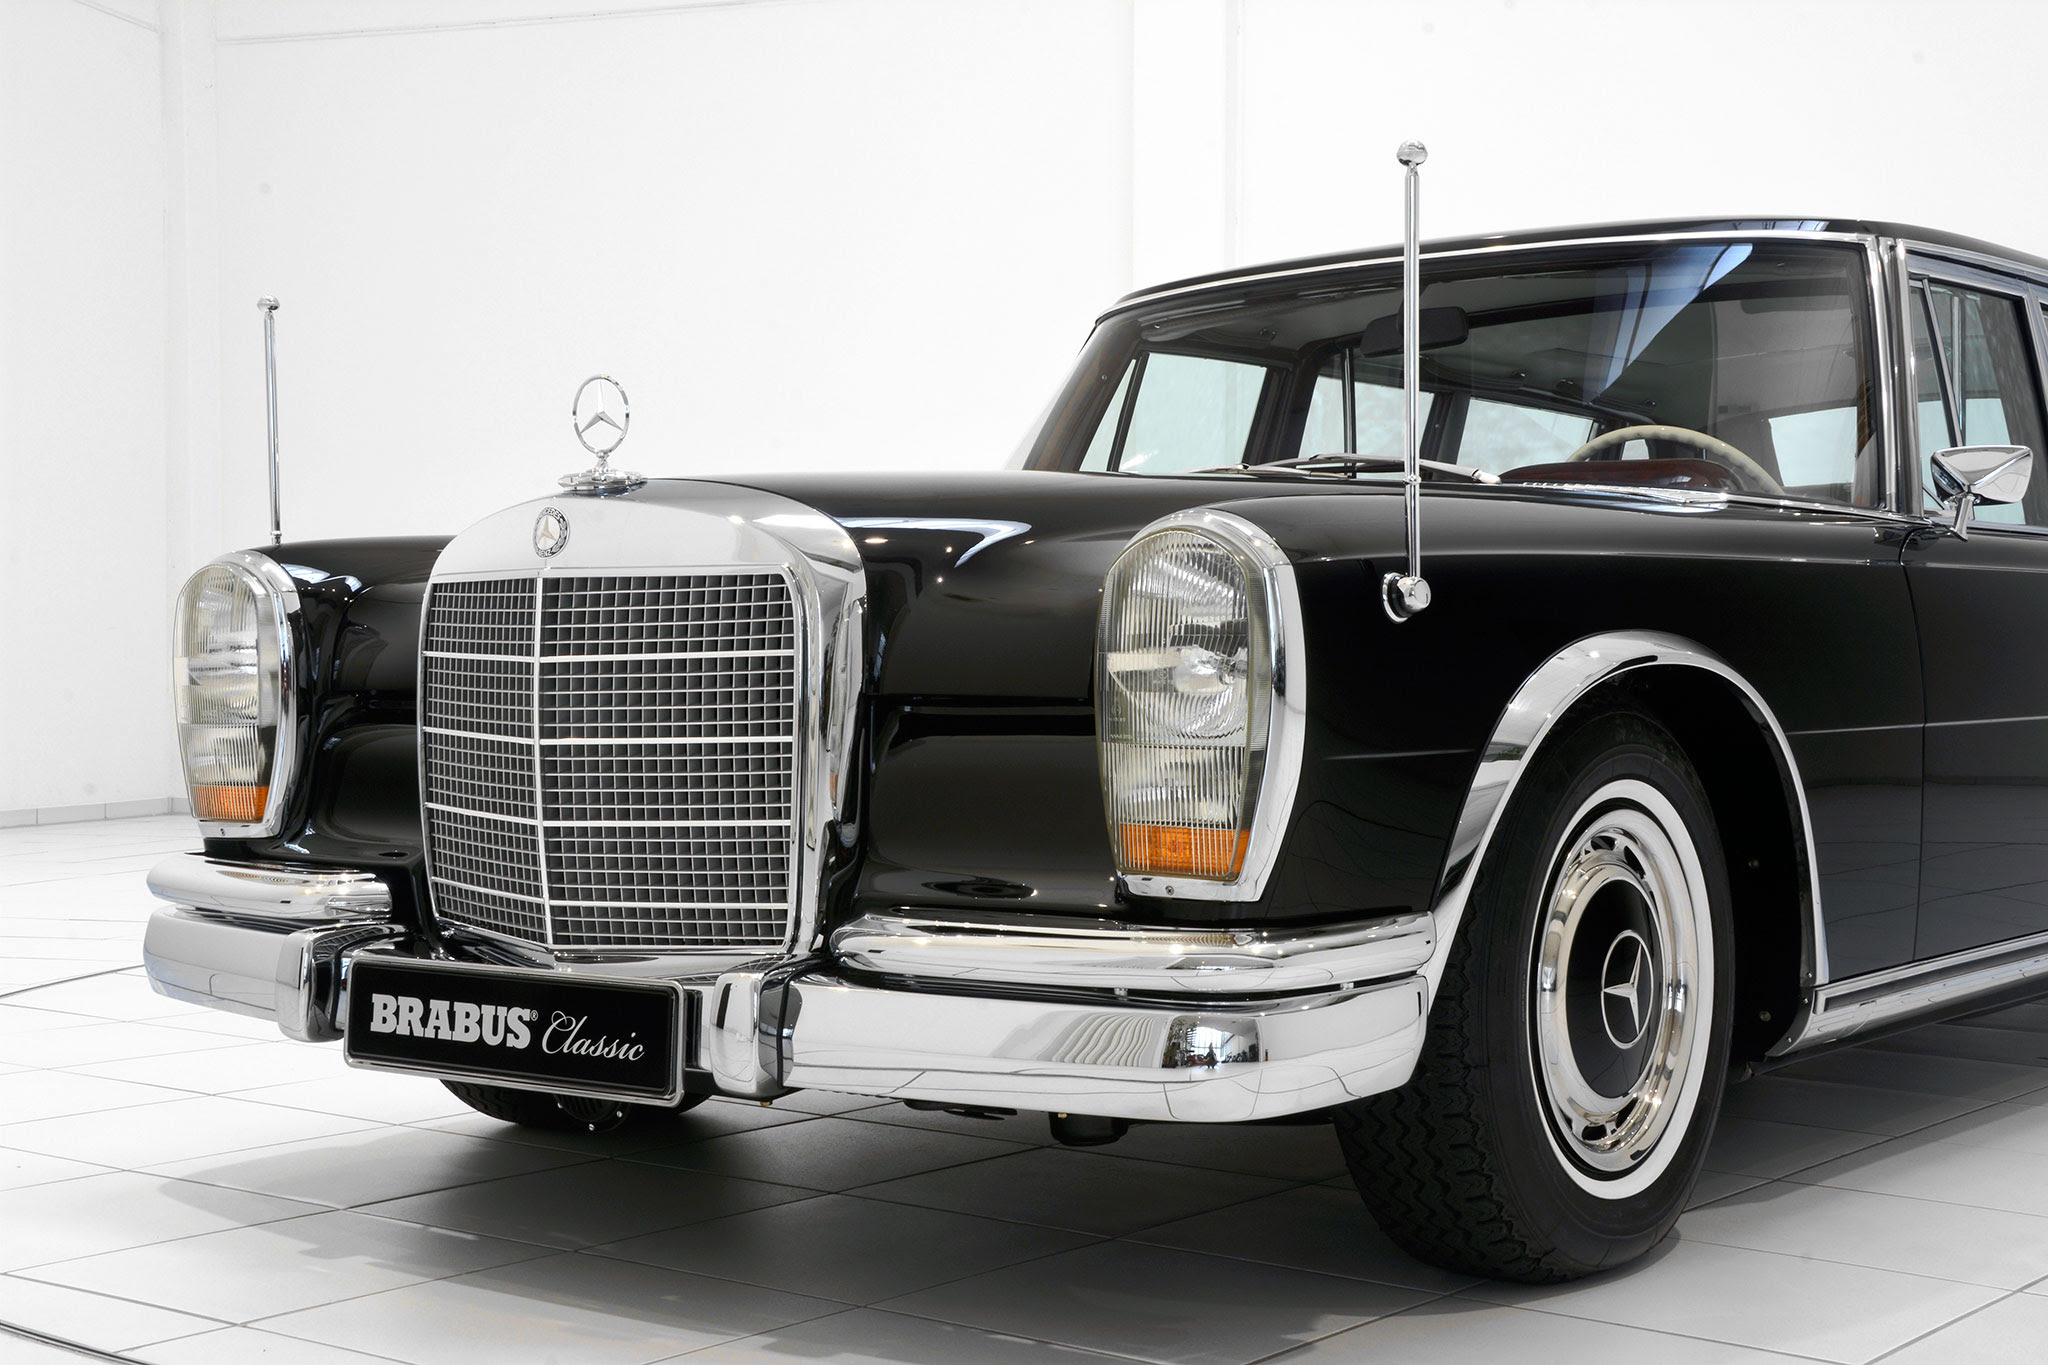 Brabus Promotes Classic Services with Restored Mercedes ...